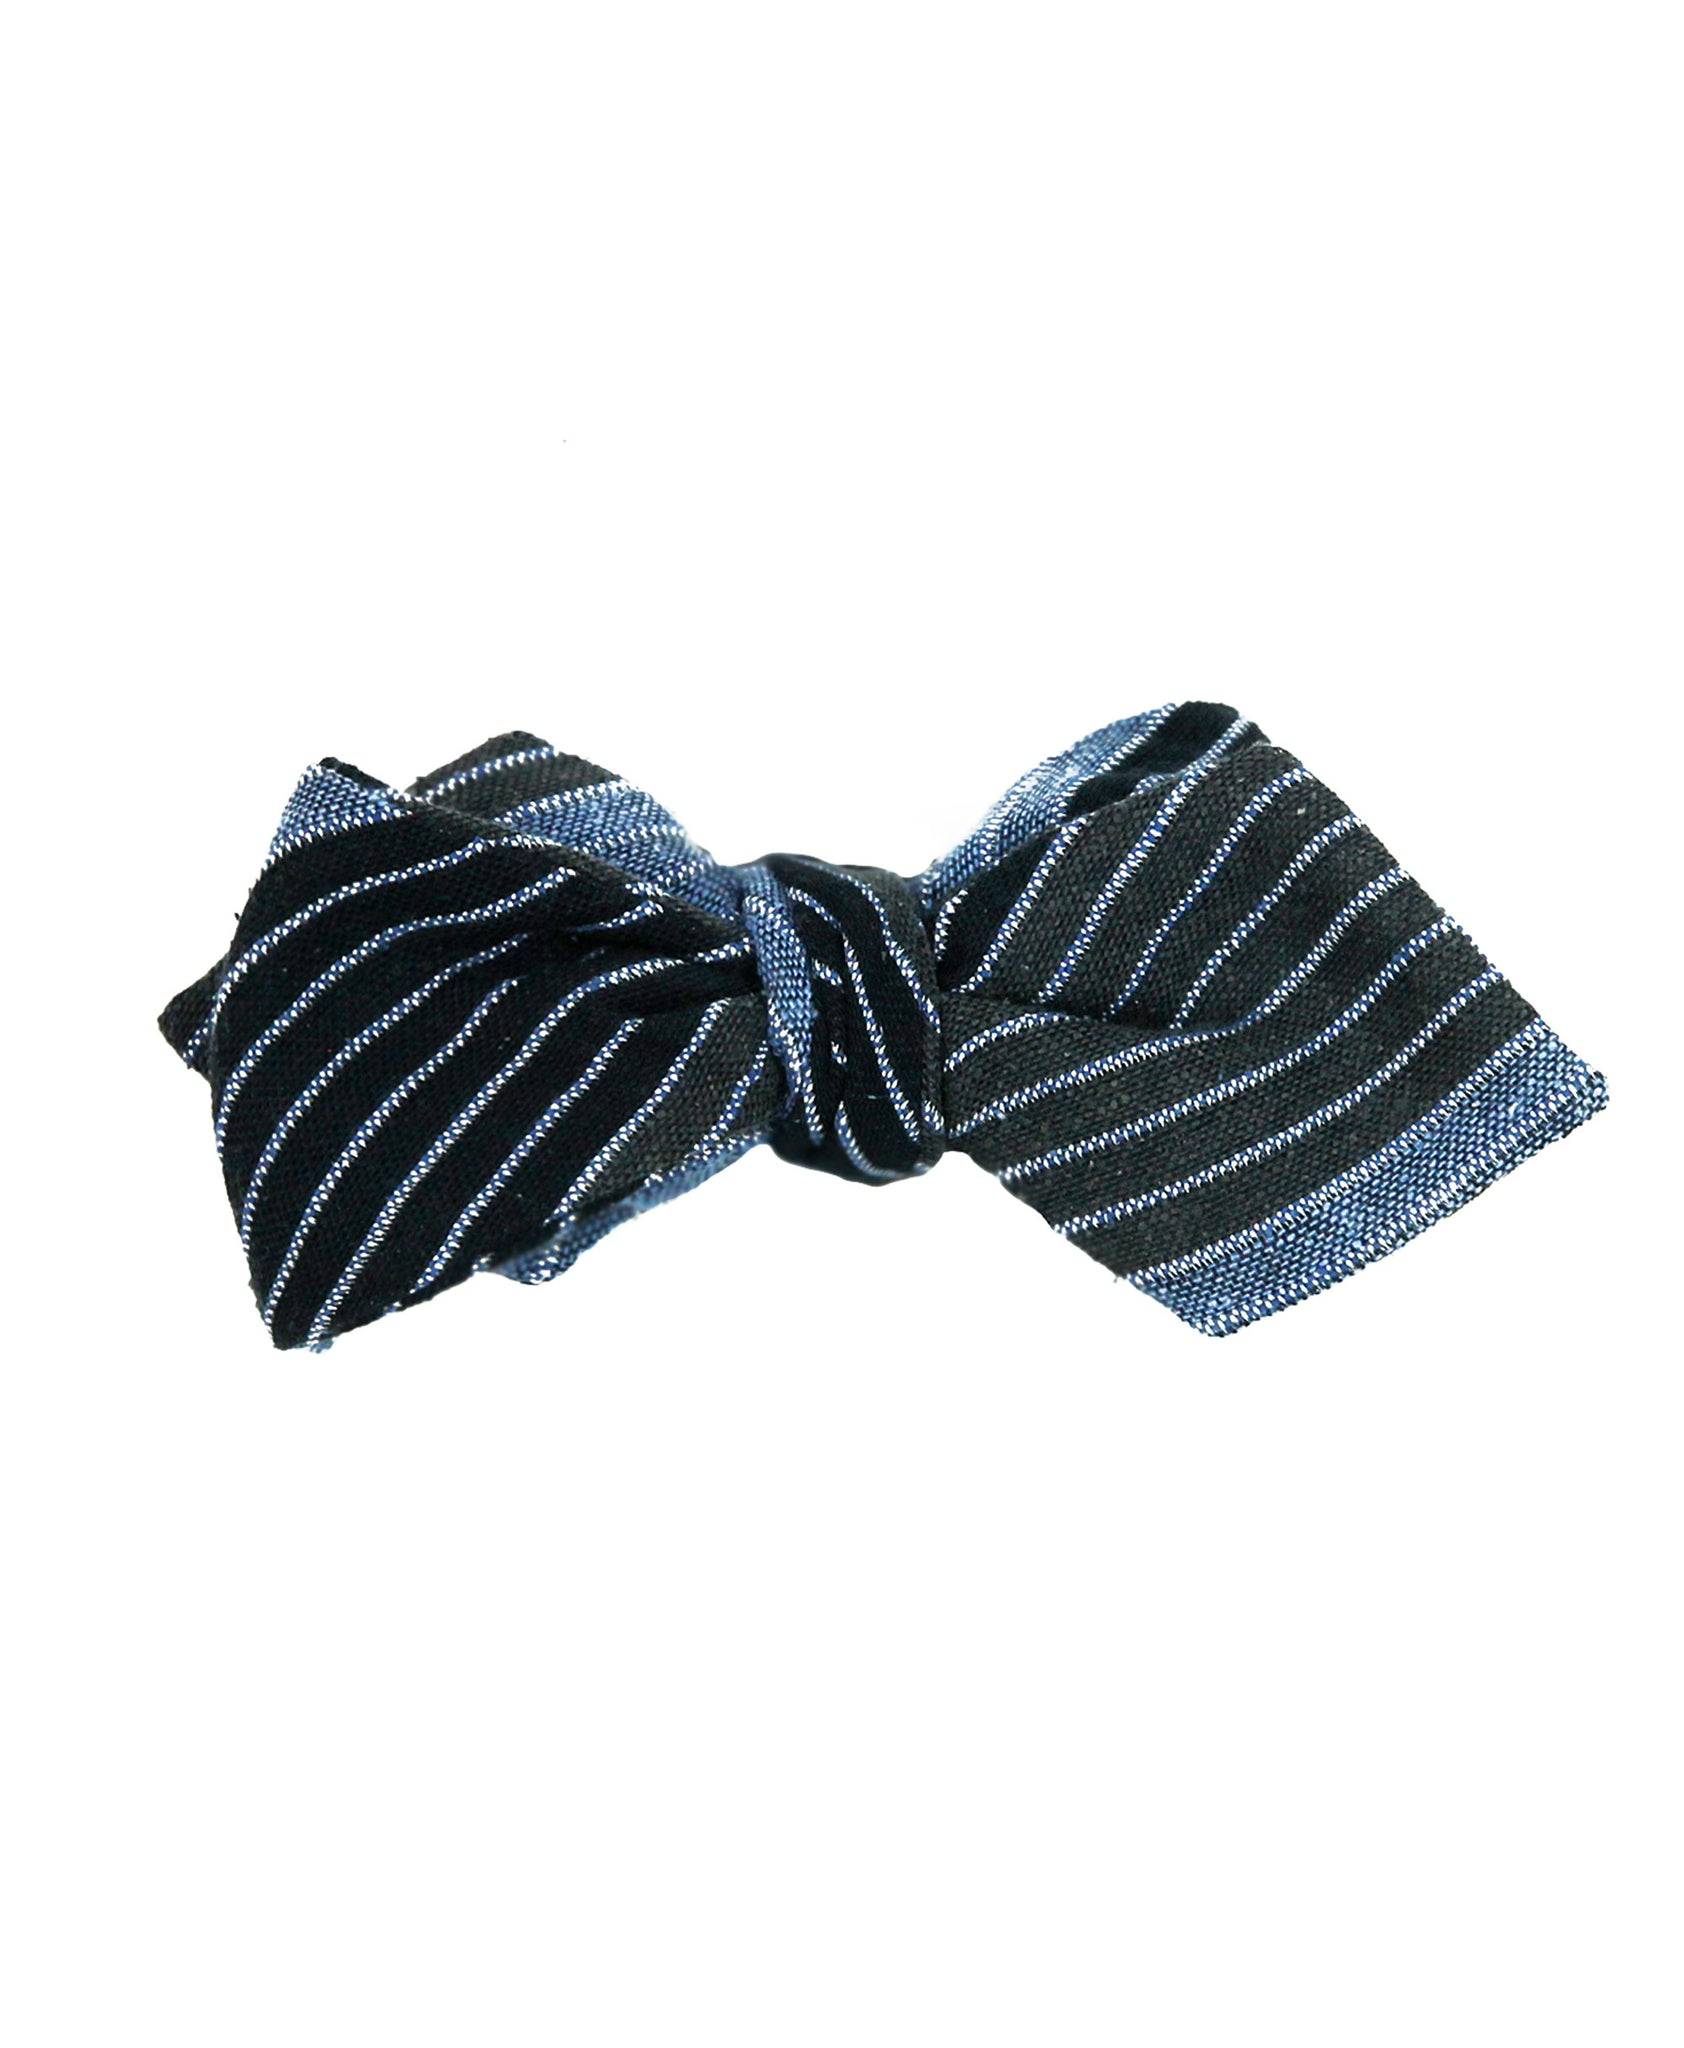 The Huckleberry Bow Tie